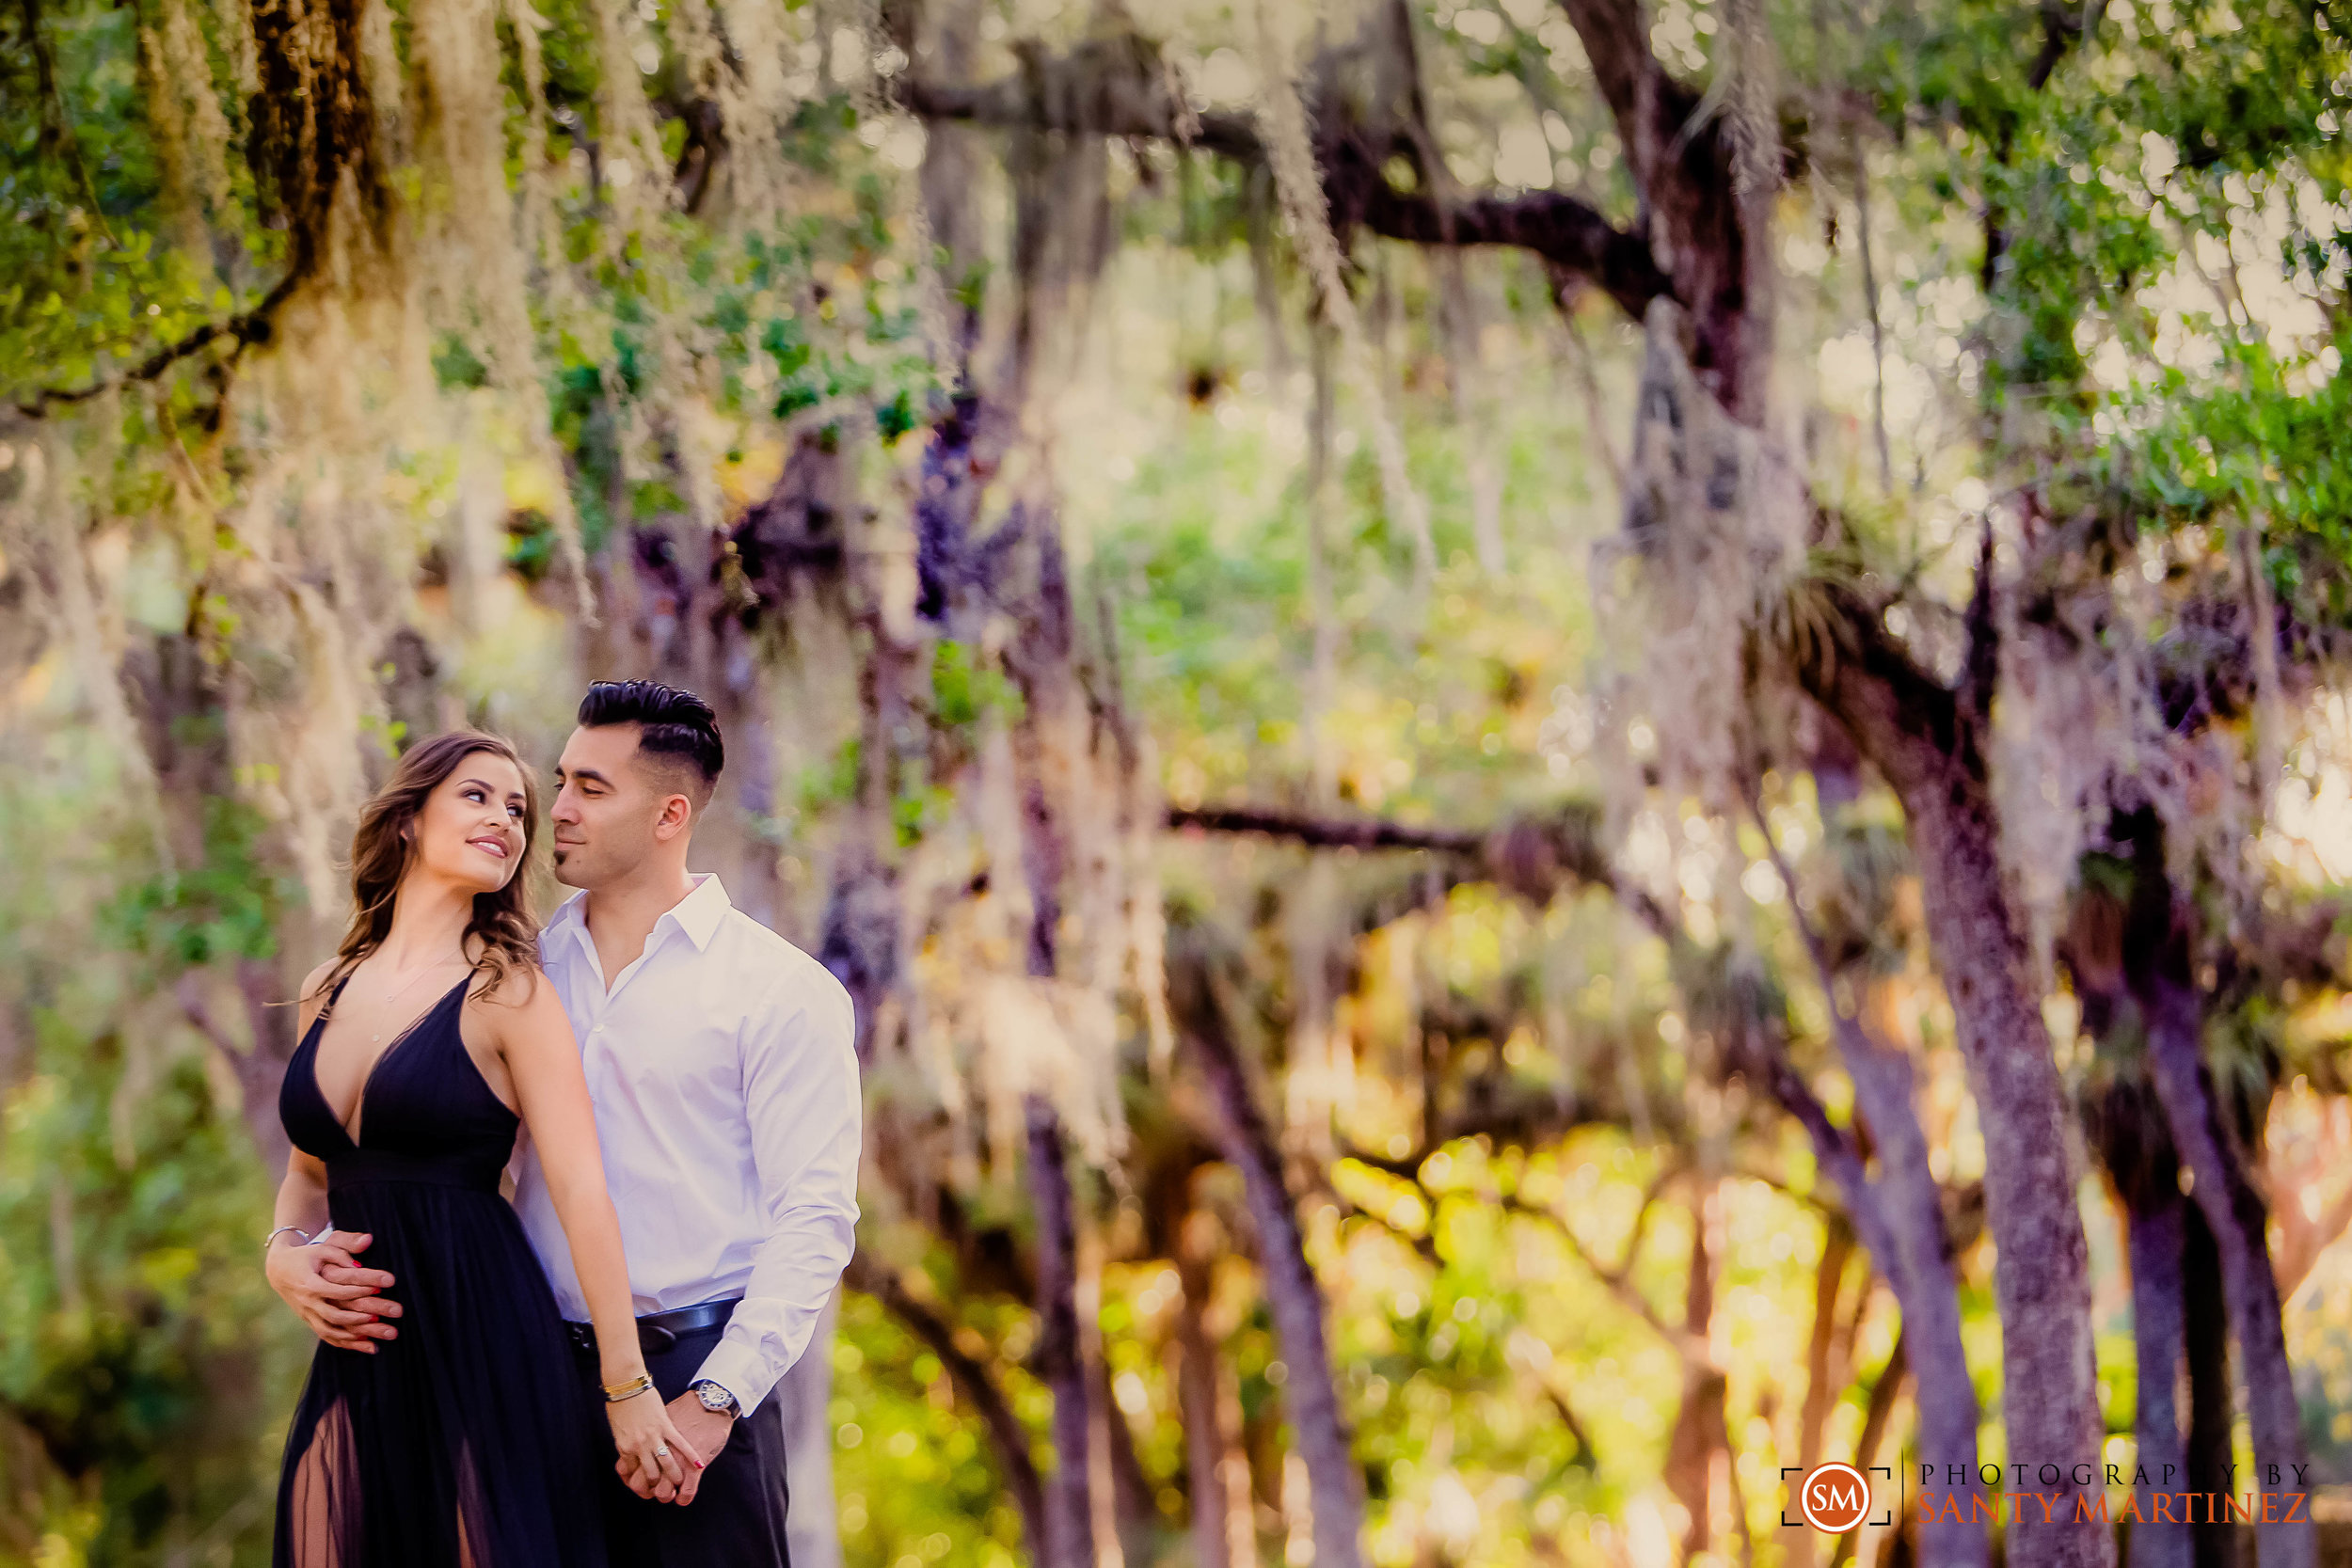 Miami Firefighter Engagement Session - Photography by Santy Martinez-16.jpg